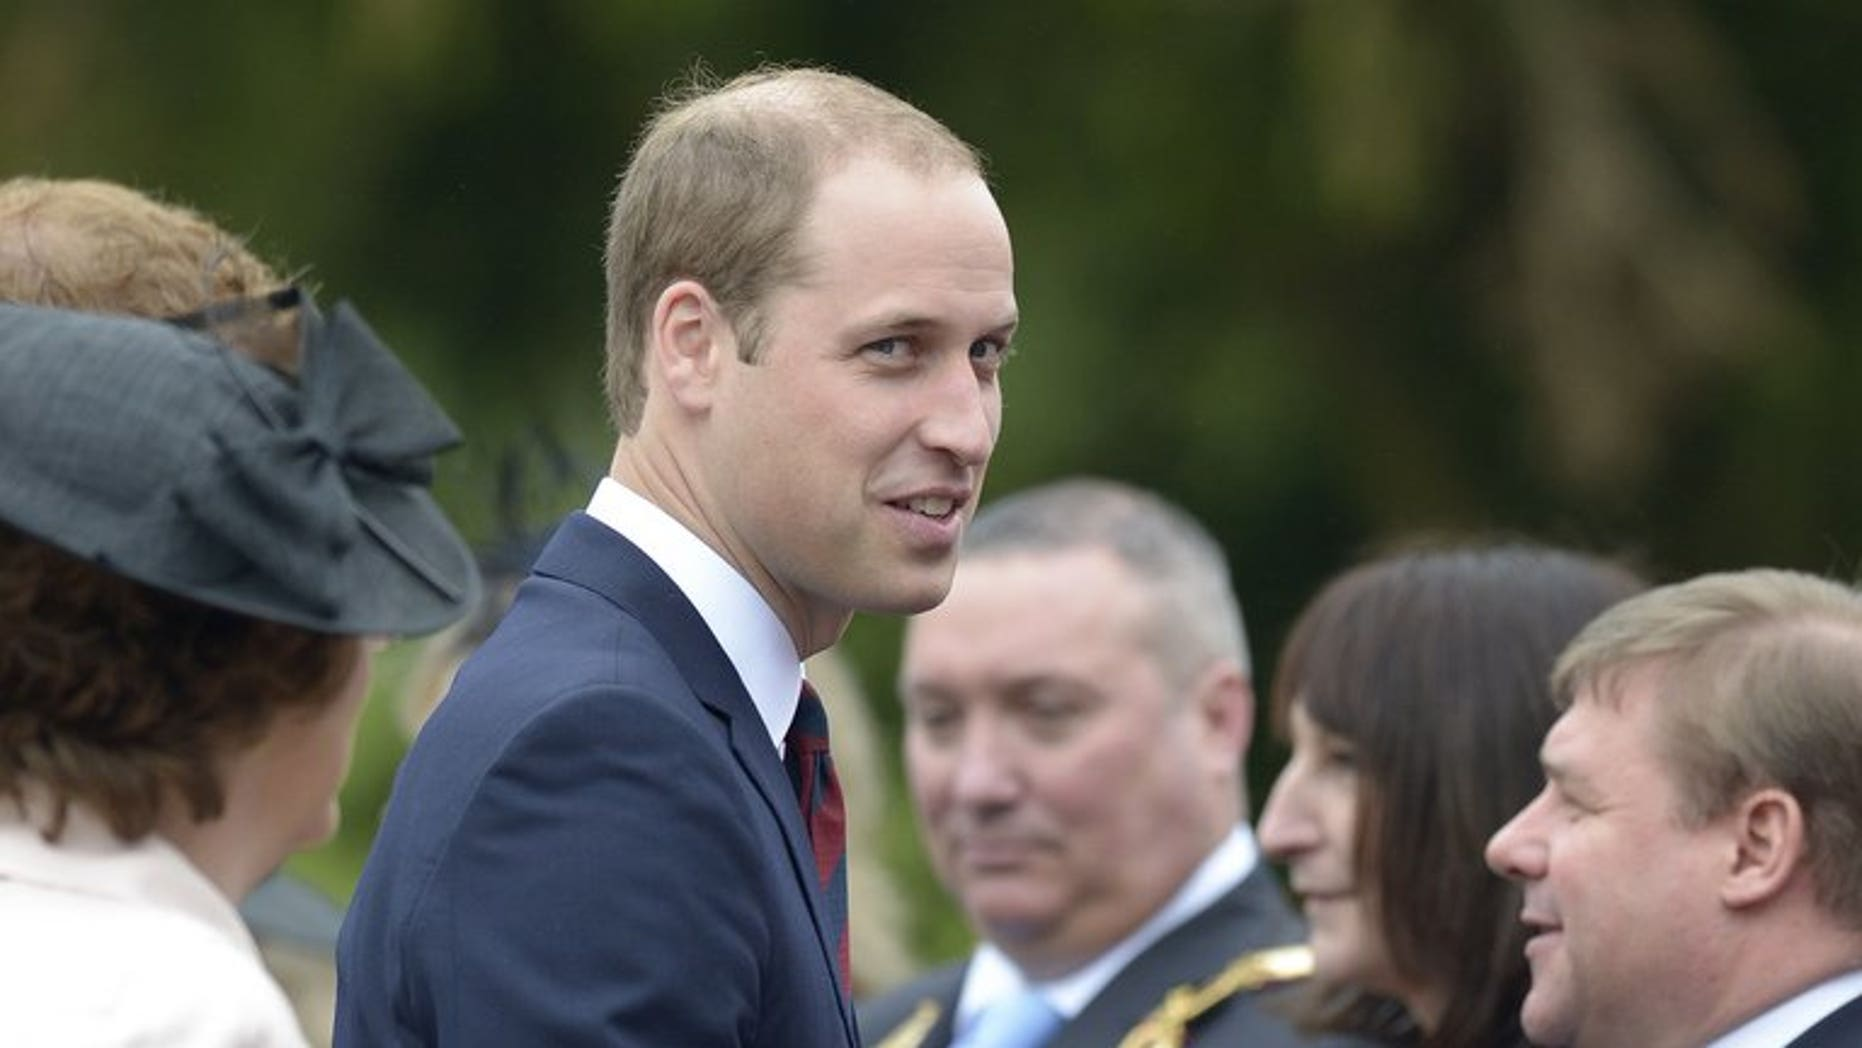 Prince William, Duke of Cambridge (C), in Tidworth, Wiltshire, southern England, on May 20, 2013. The BBC apologised on Thursday for accidentally showing an image of Britain's Prince William with a penis drawn on his head.